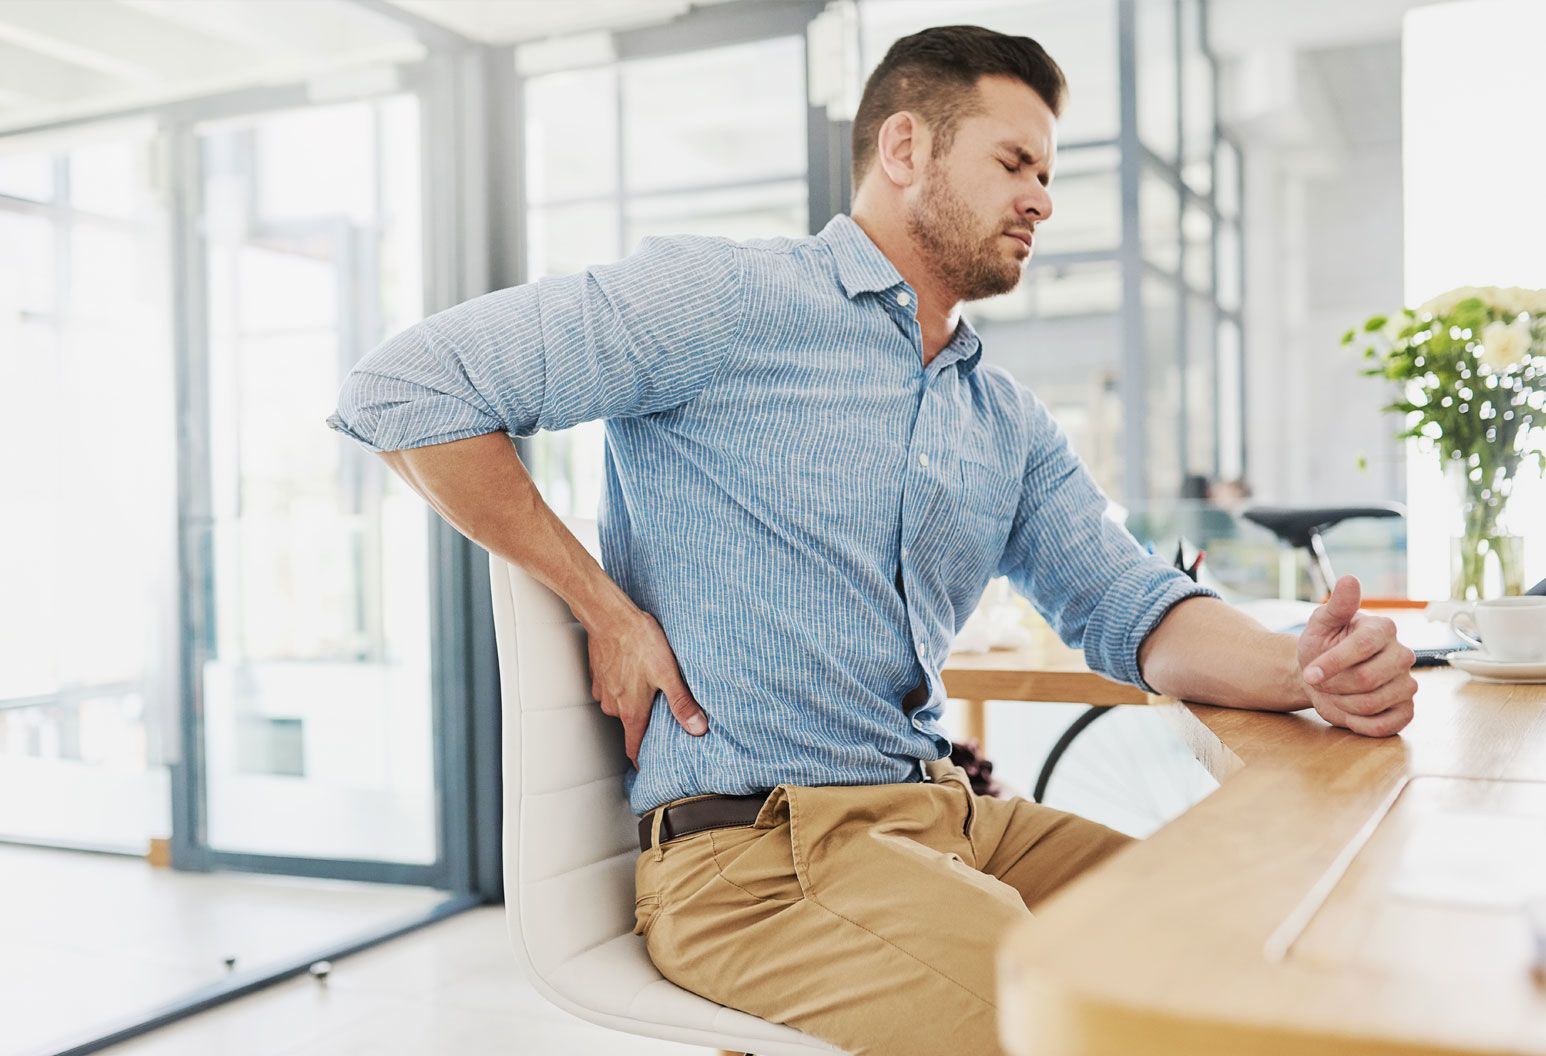 How to reduce back pain and tightness with 3 simple exercises.